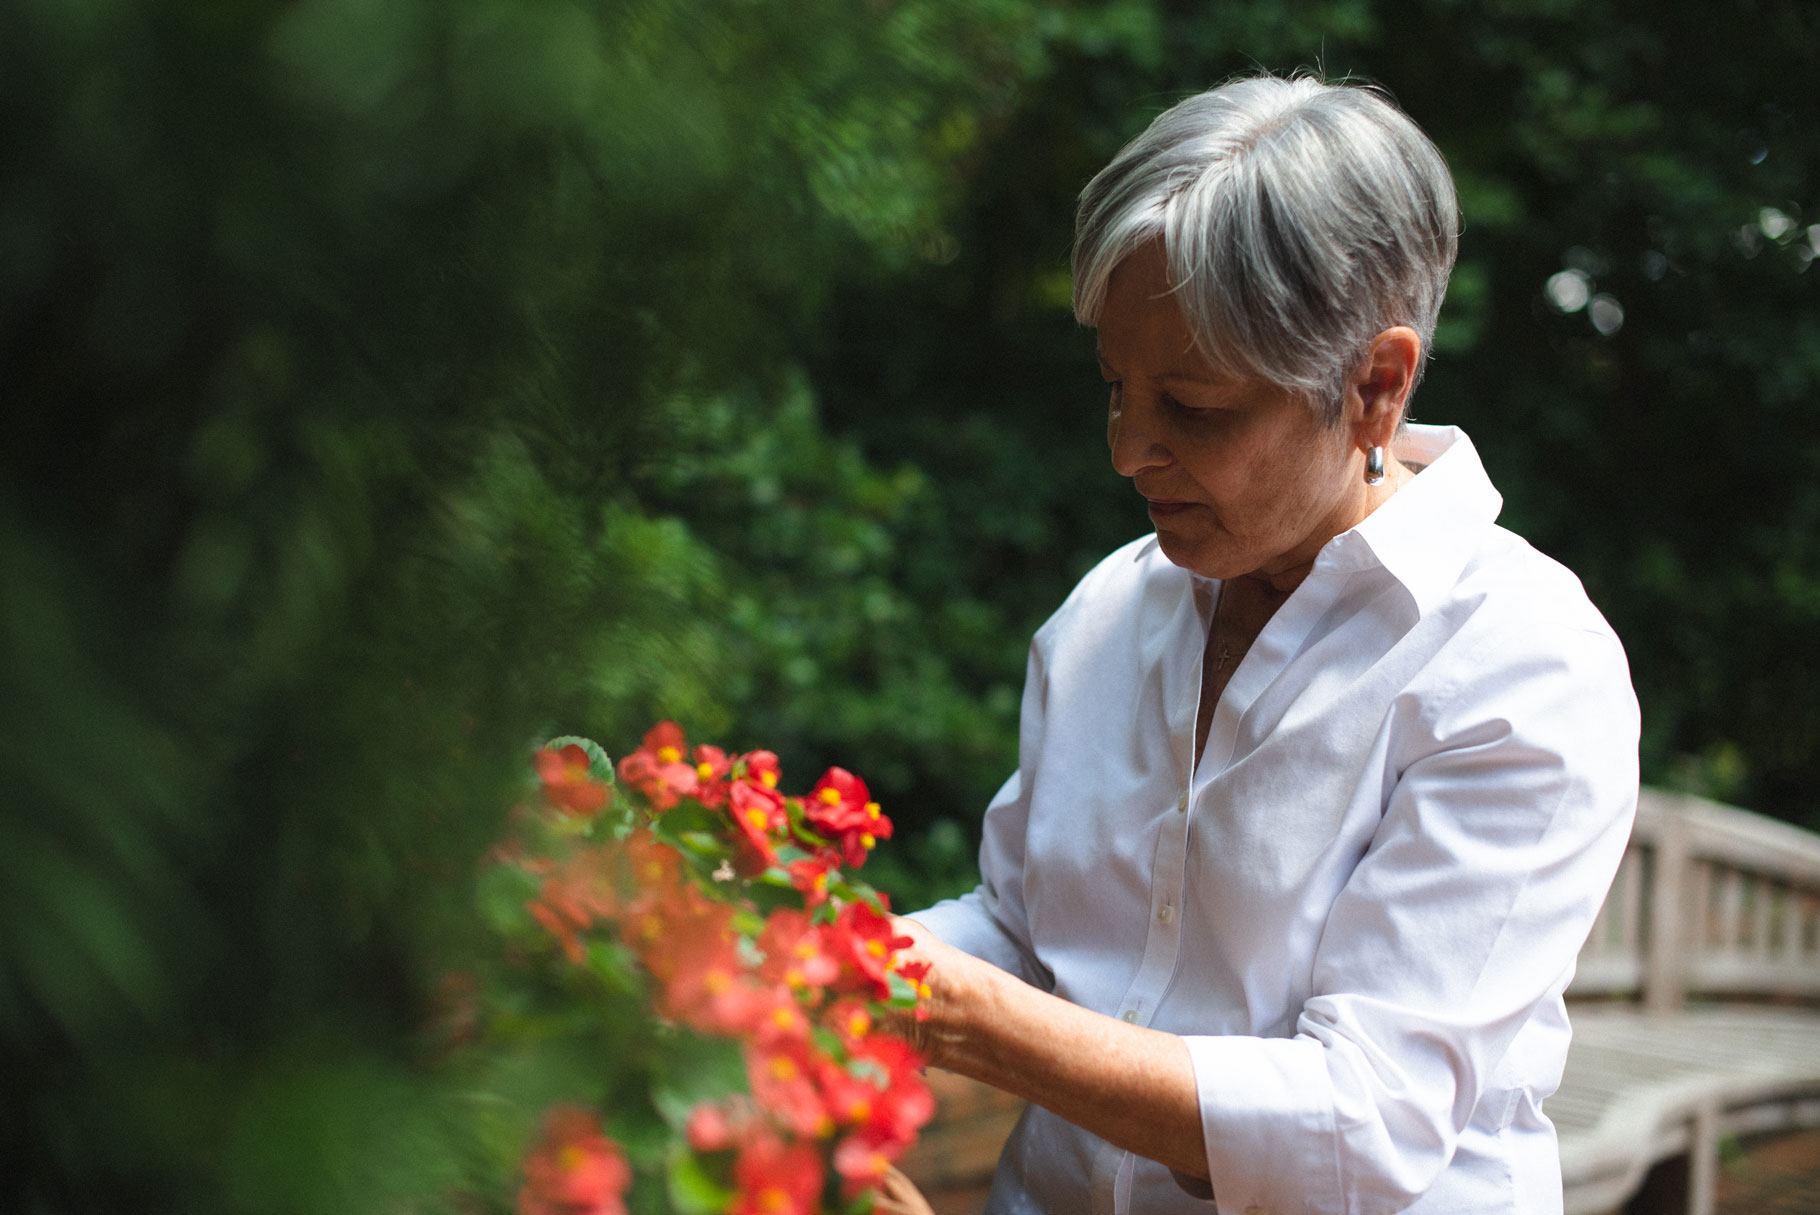 Gayle tends to a plant with red blossoms out in her garden.